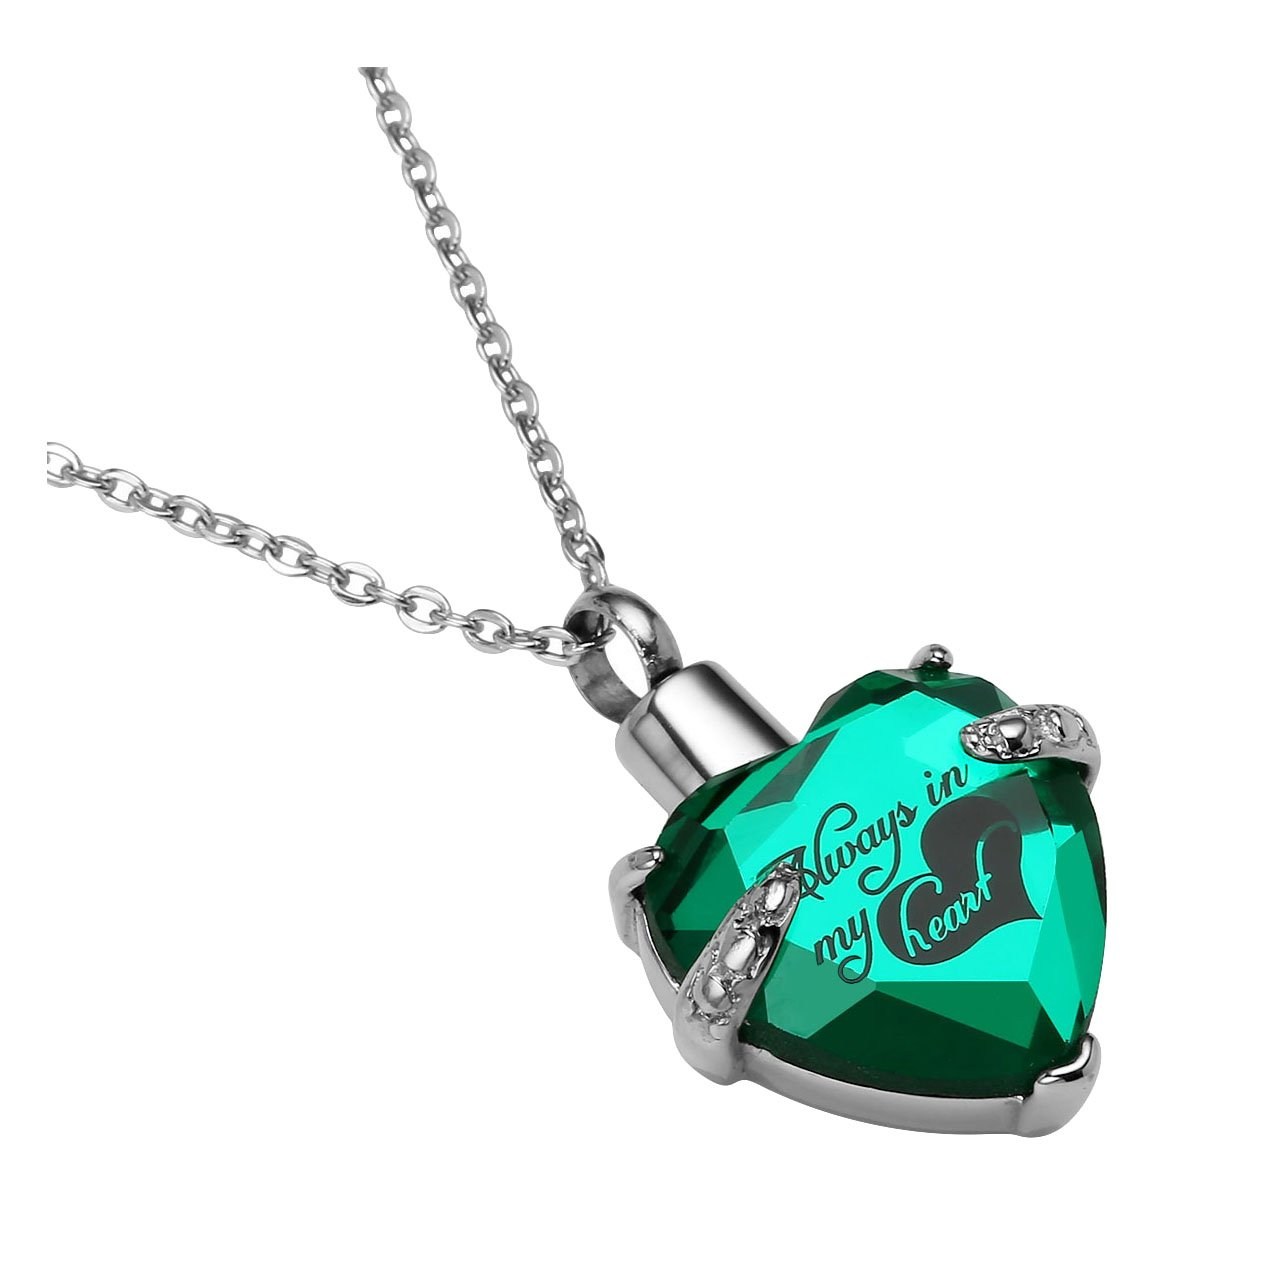 Zysta Free Engraving - Personalized Custom Always In My Heart Small Cremation Keepsake Urn Pendant Necklace for Ashes of Loved One In (Green, Engraving)